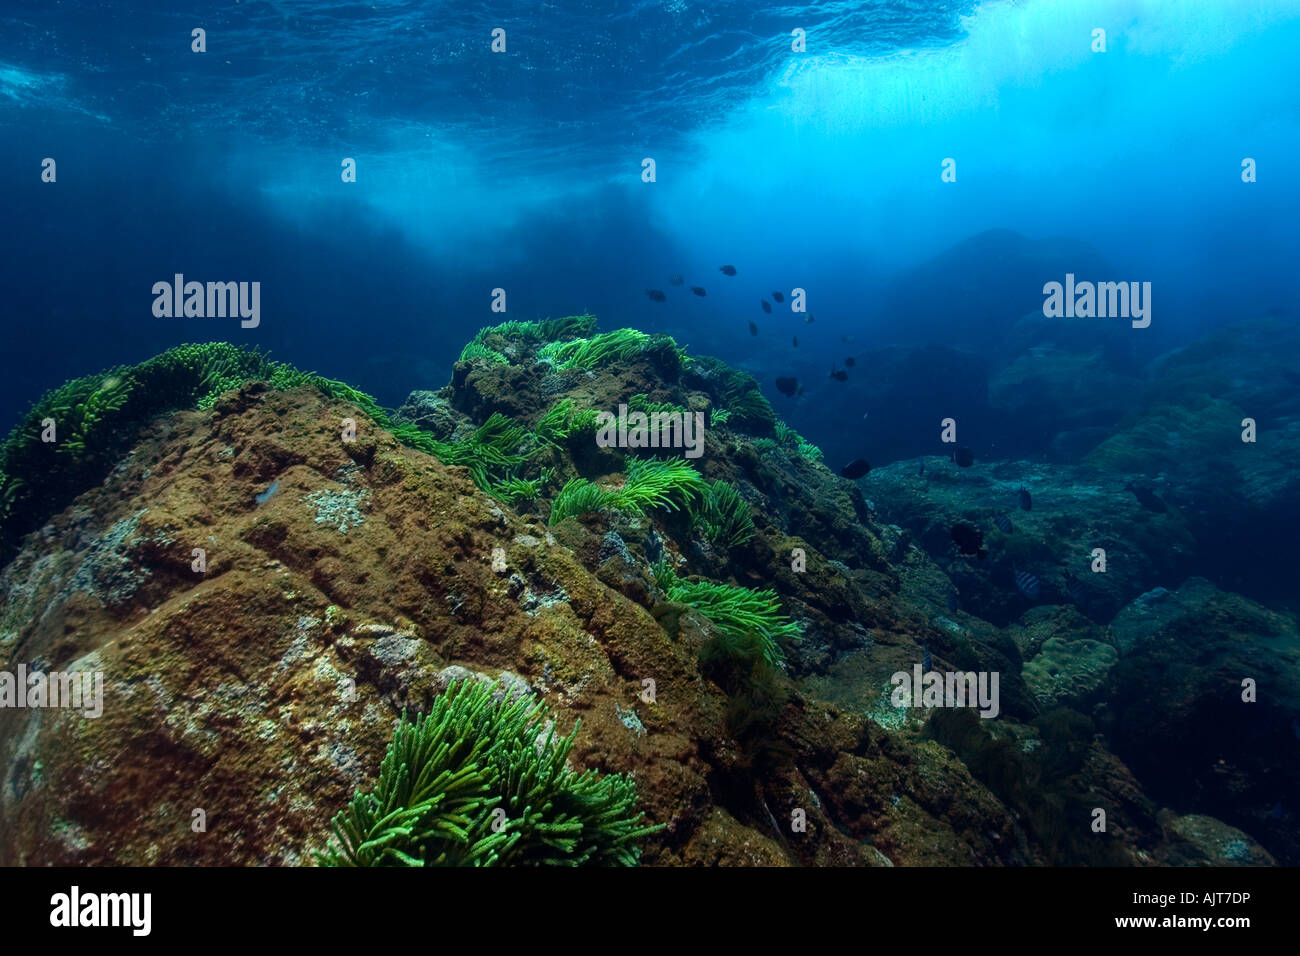 Underwater substrate St Peter and St Paul s rocks Brazil Atlantic Ocean - Stock Image